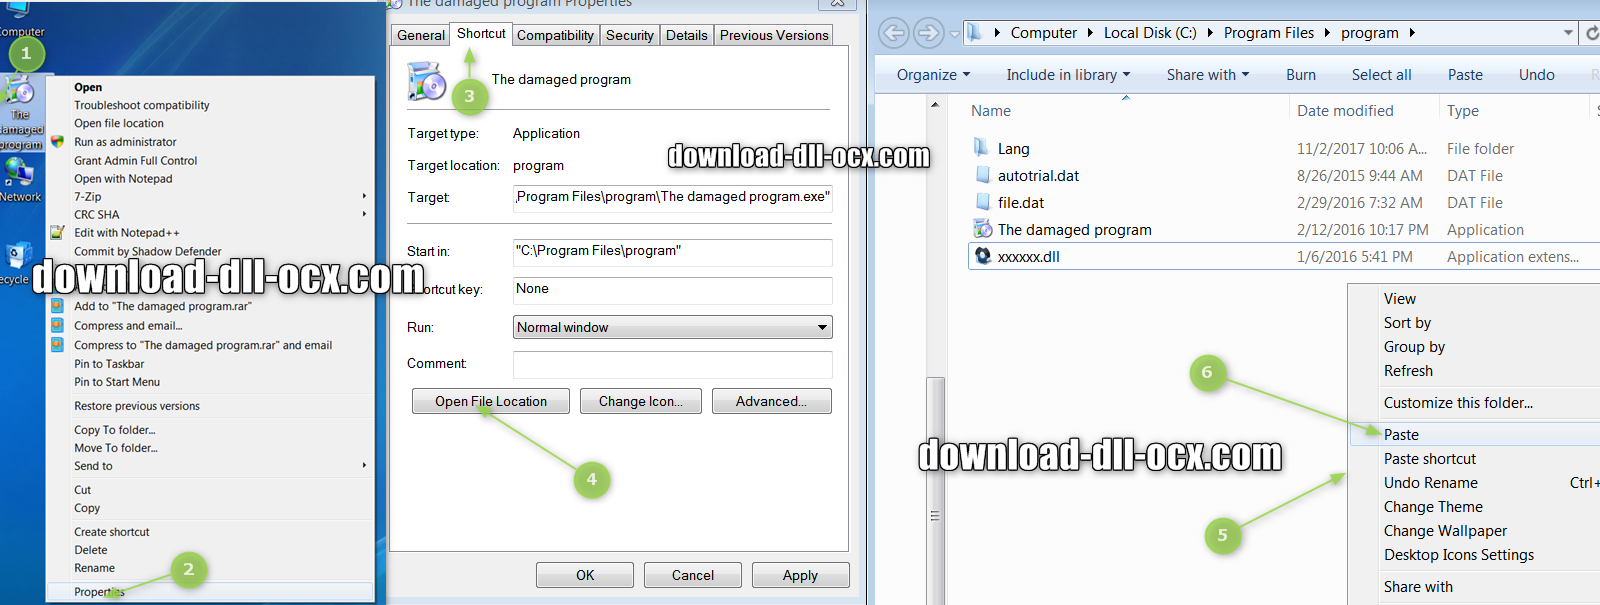 how to install LangMan.dll file? for fix missing